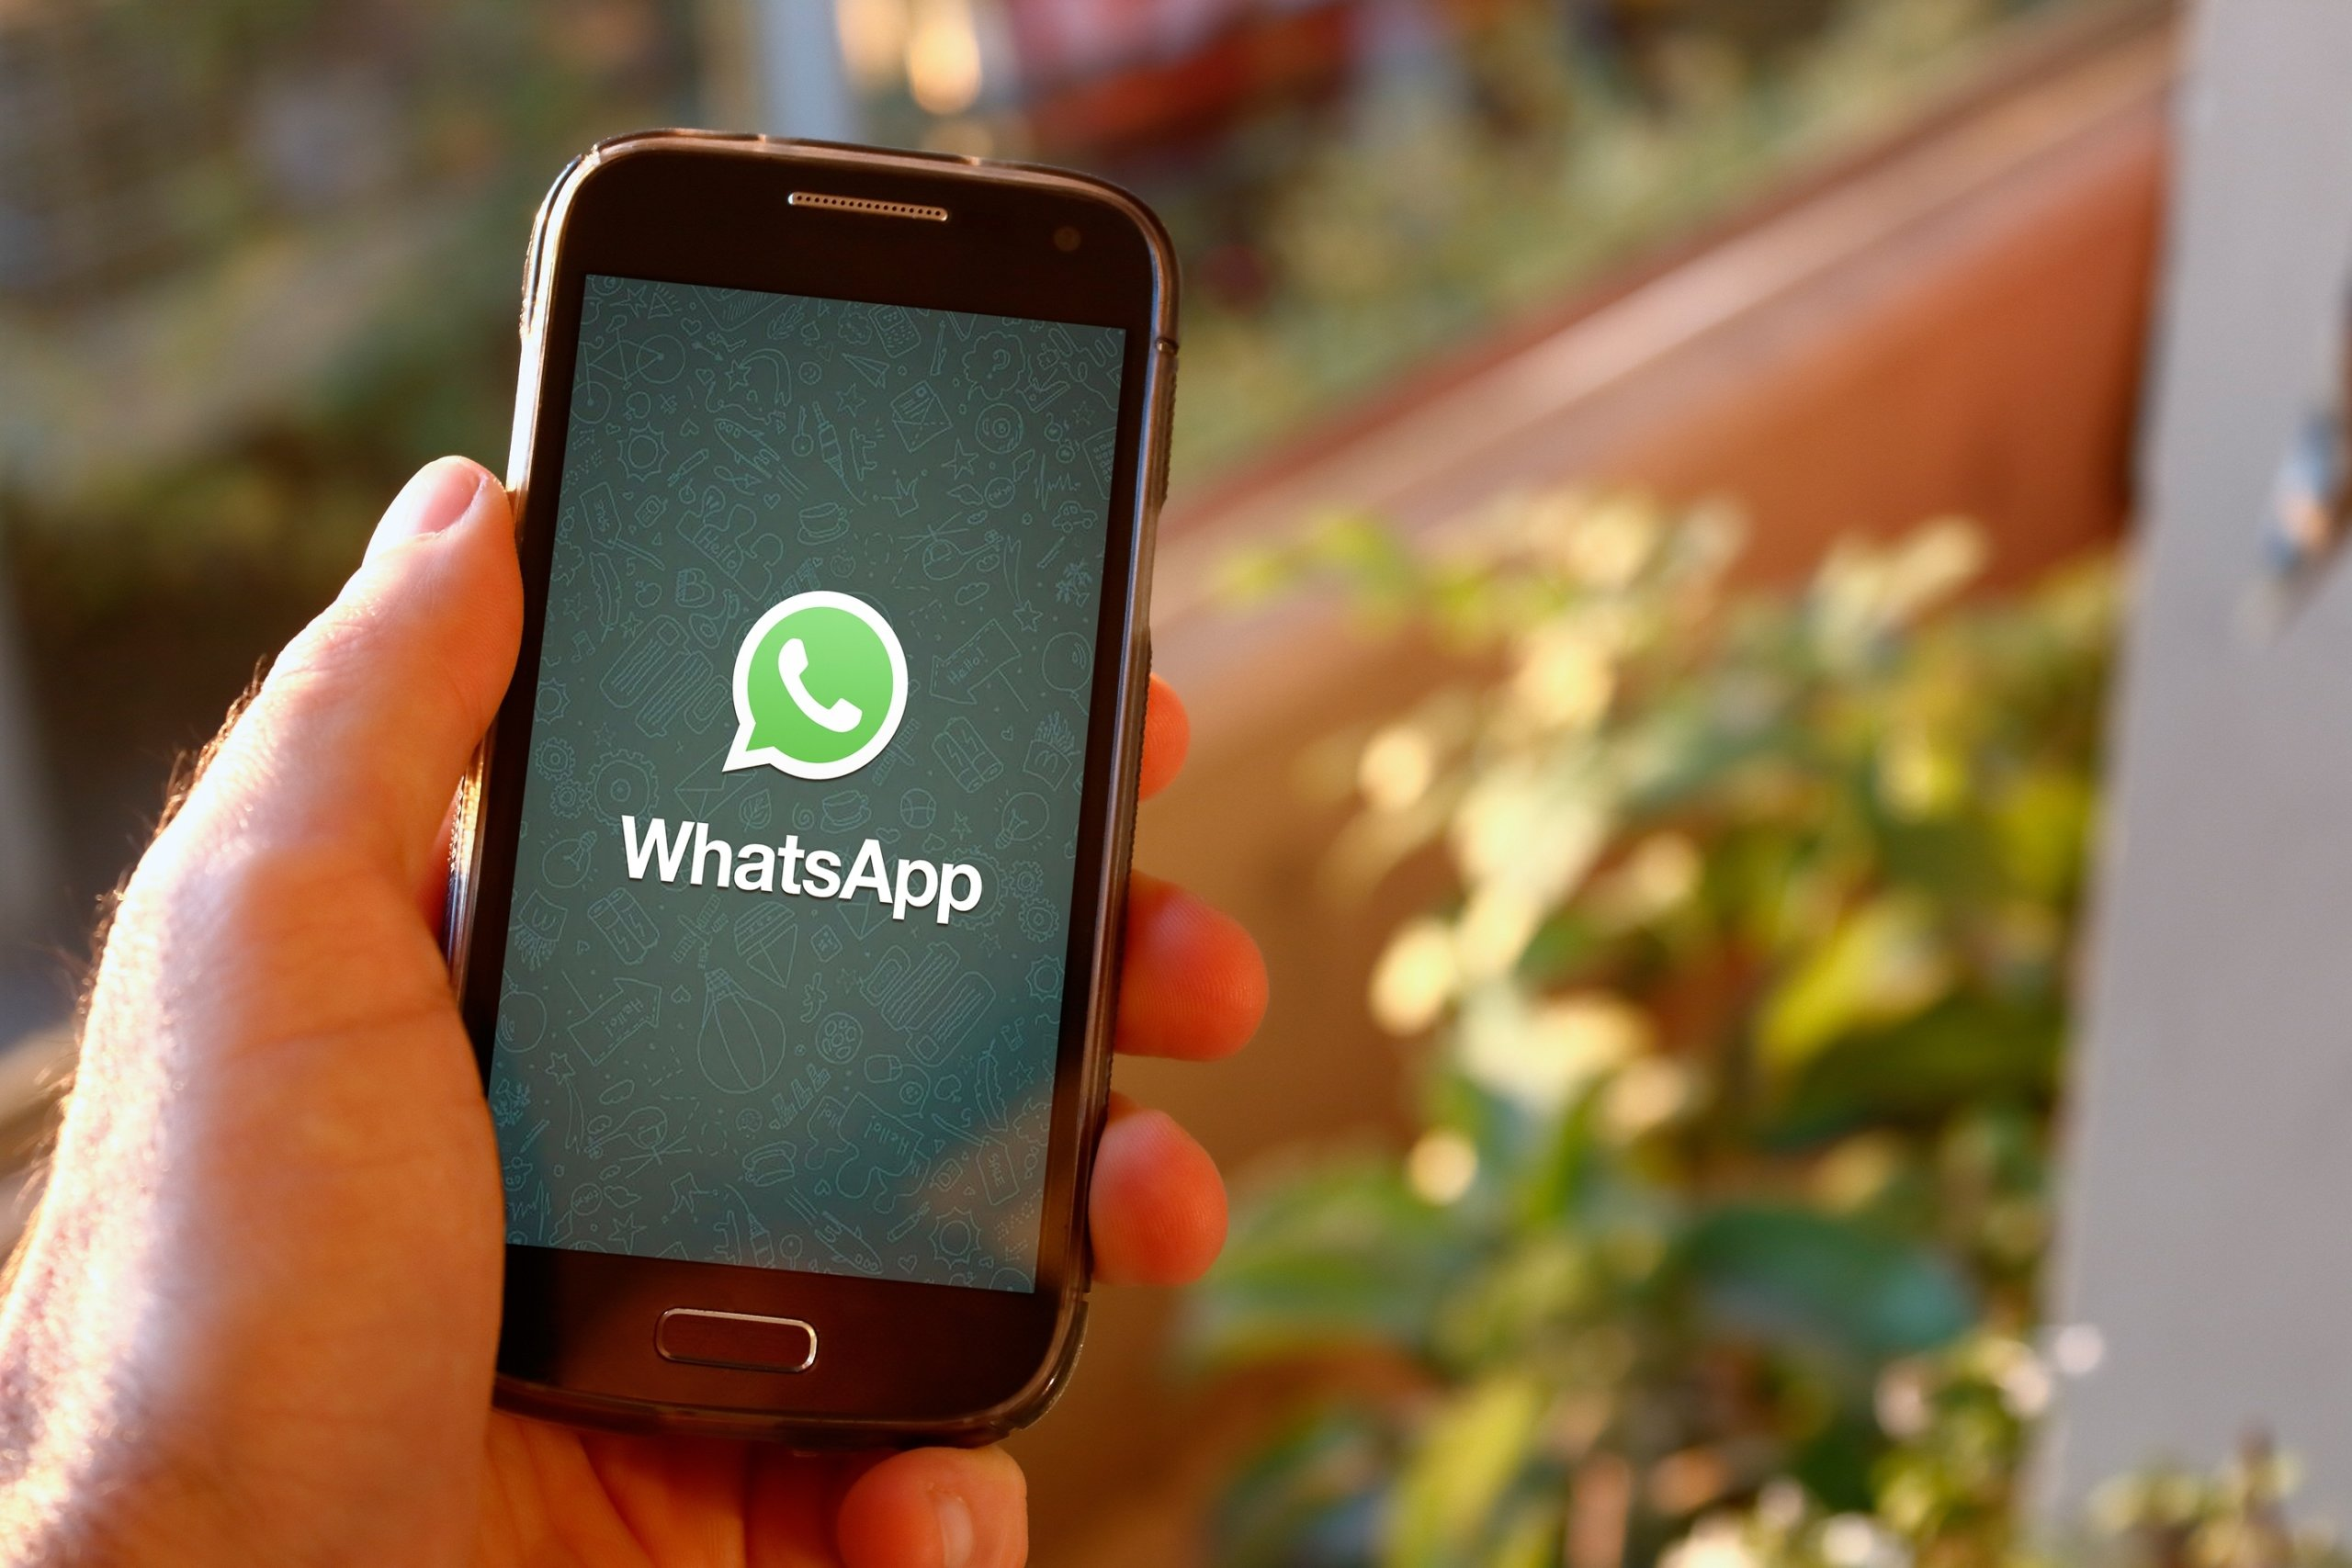 Man Sentenced to Prison in Abu Dhabi for Calling his Fiancée Idiot on Whatsapp